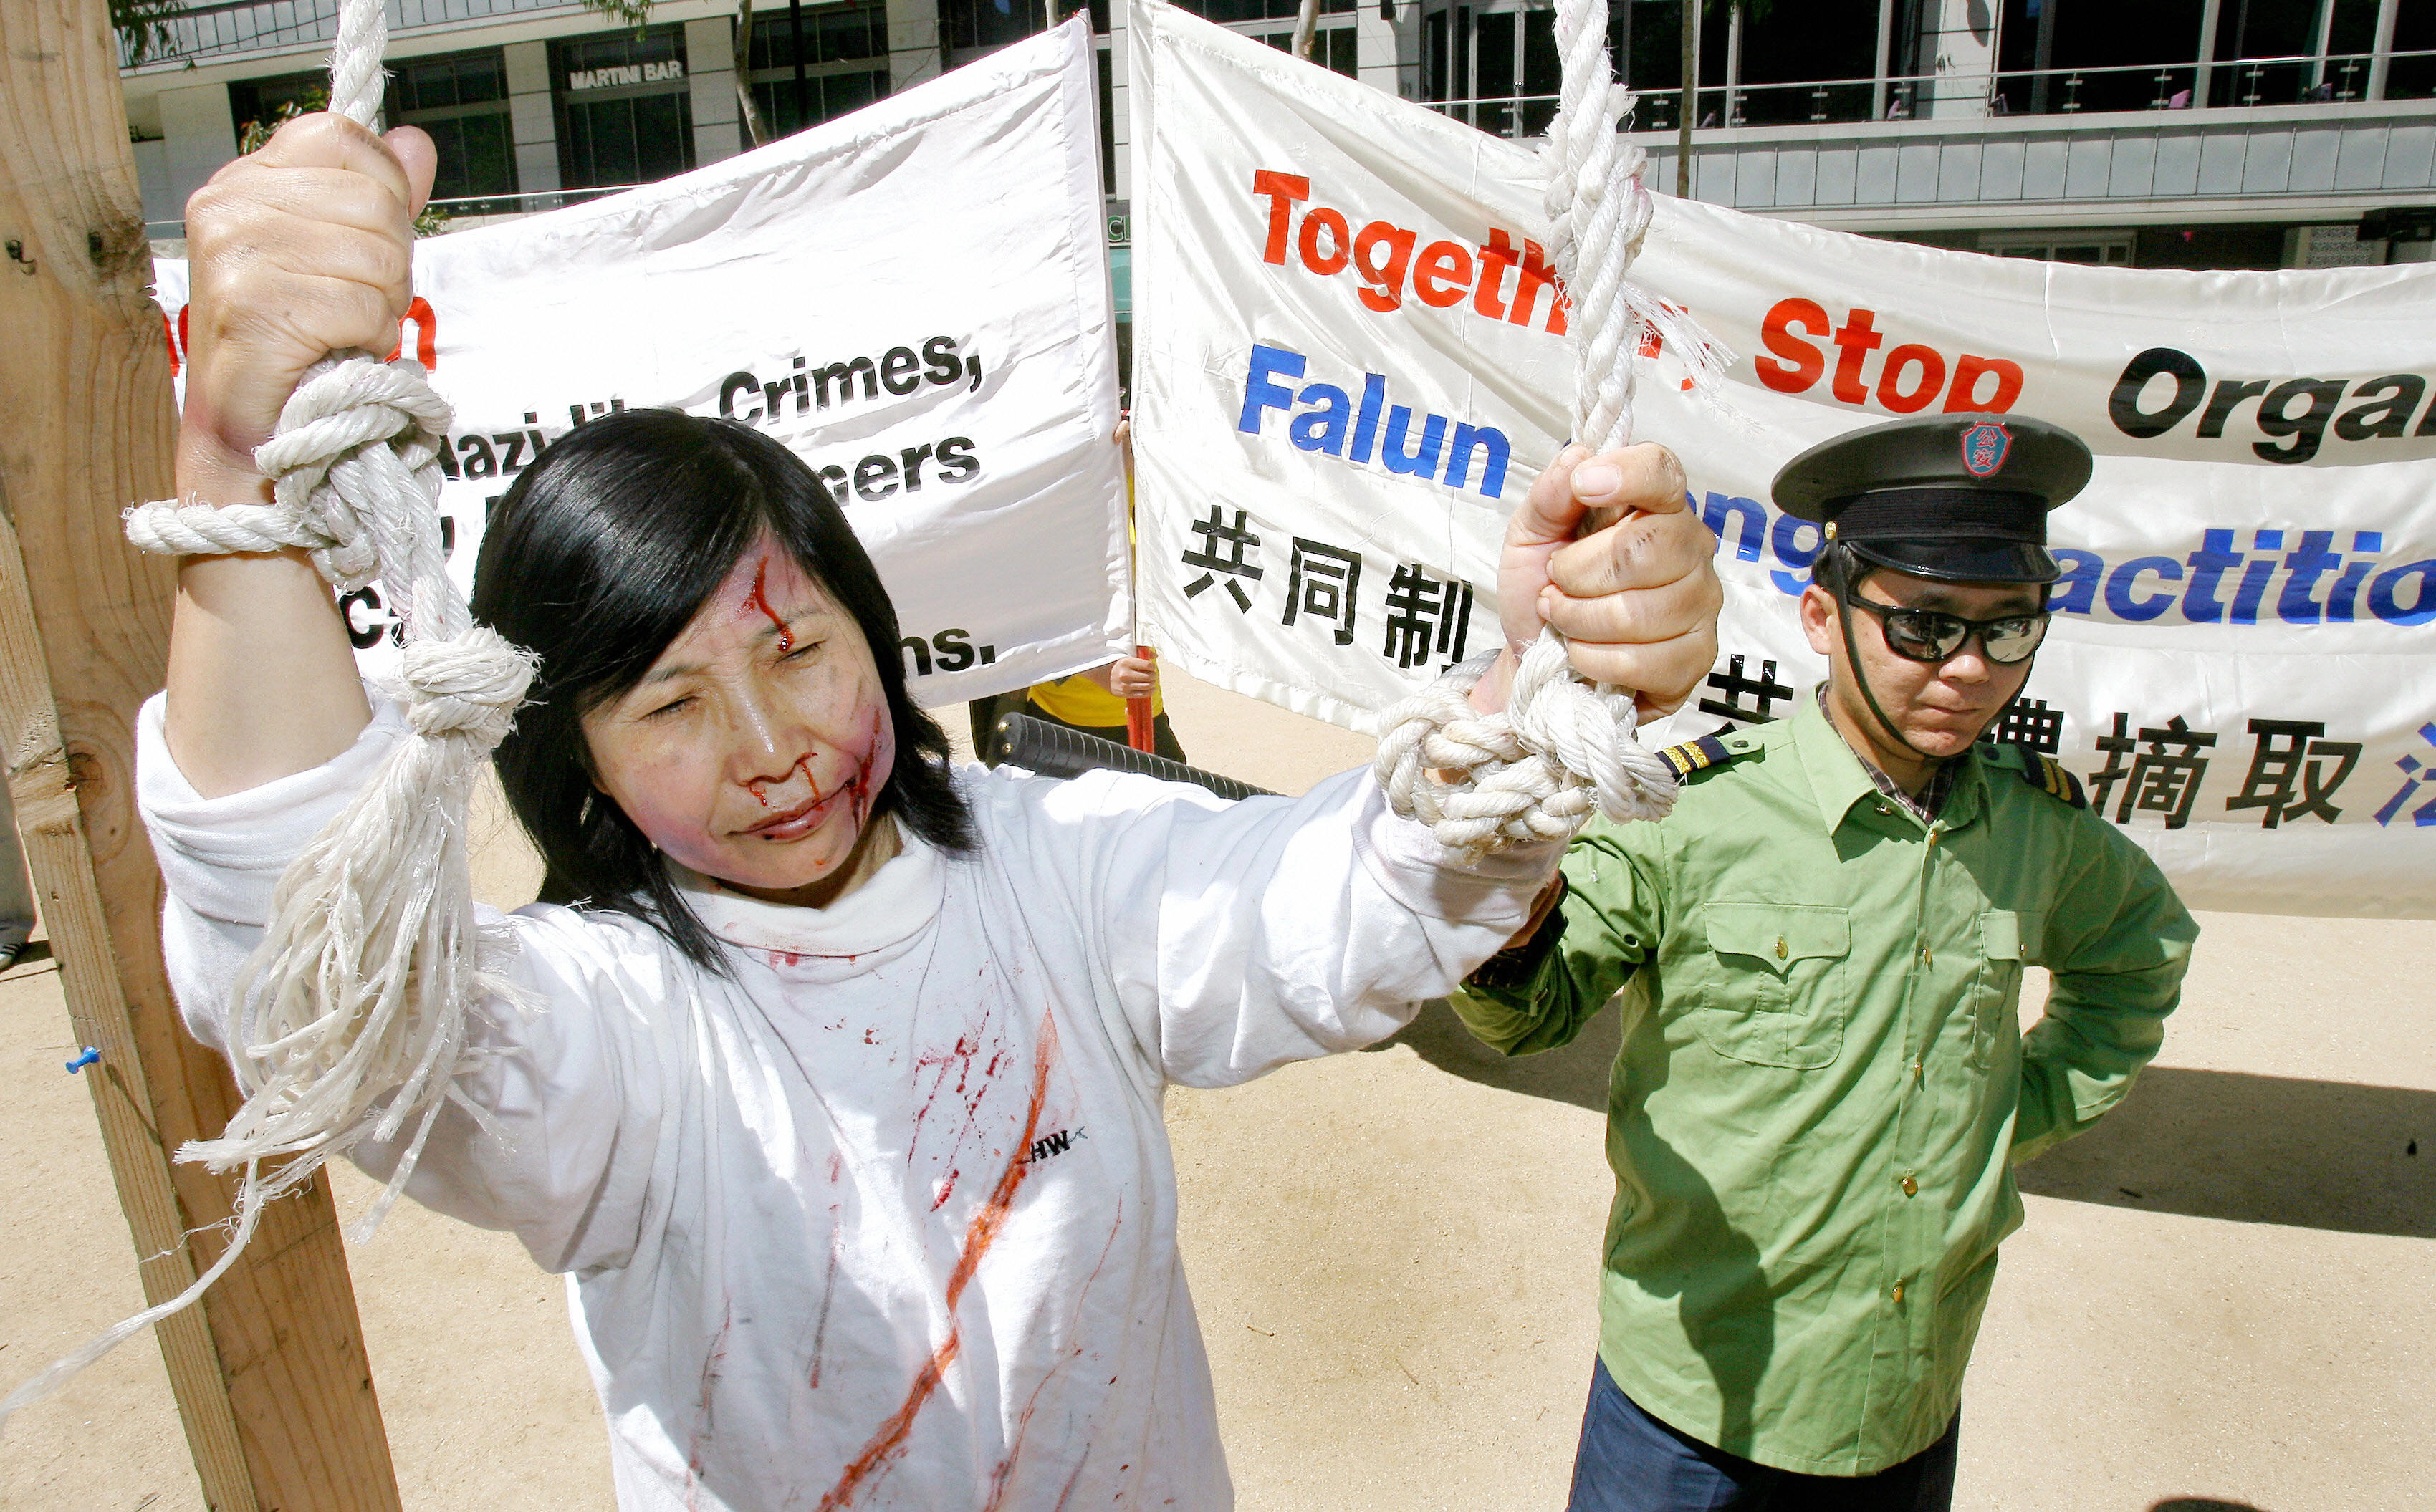 Melbourne, AUSTRALIA: Falun Gong participate in street theatre in a protest over the Chinese government harvesting body organs from arrested Falun Gong practitioners in China as the world's biggest finance conference, the G20 summit, prepares to start, in Melbourne 17 November 2006. A security lockdown in Australia's second city was aimed at preventing unrest at during Group of Twenty (G20) summit this weekend to be attended by the globe's most powerful financial leaders. AFP PHOTO/William WEST (Photo credit should read WILLIAM WEST/AFP/Getty Images)